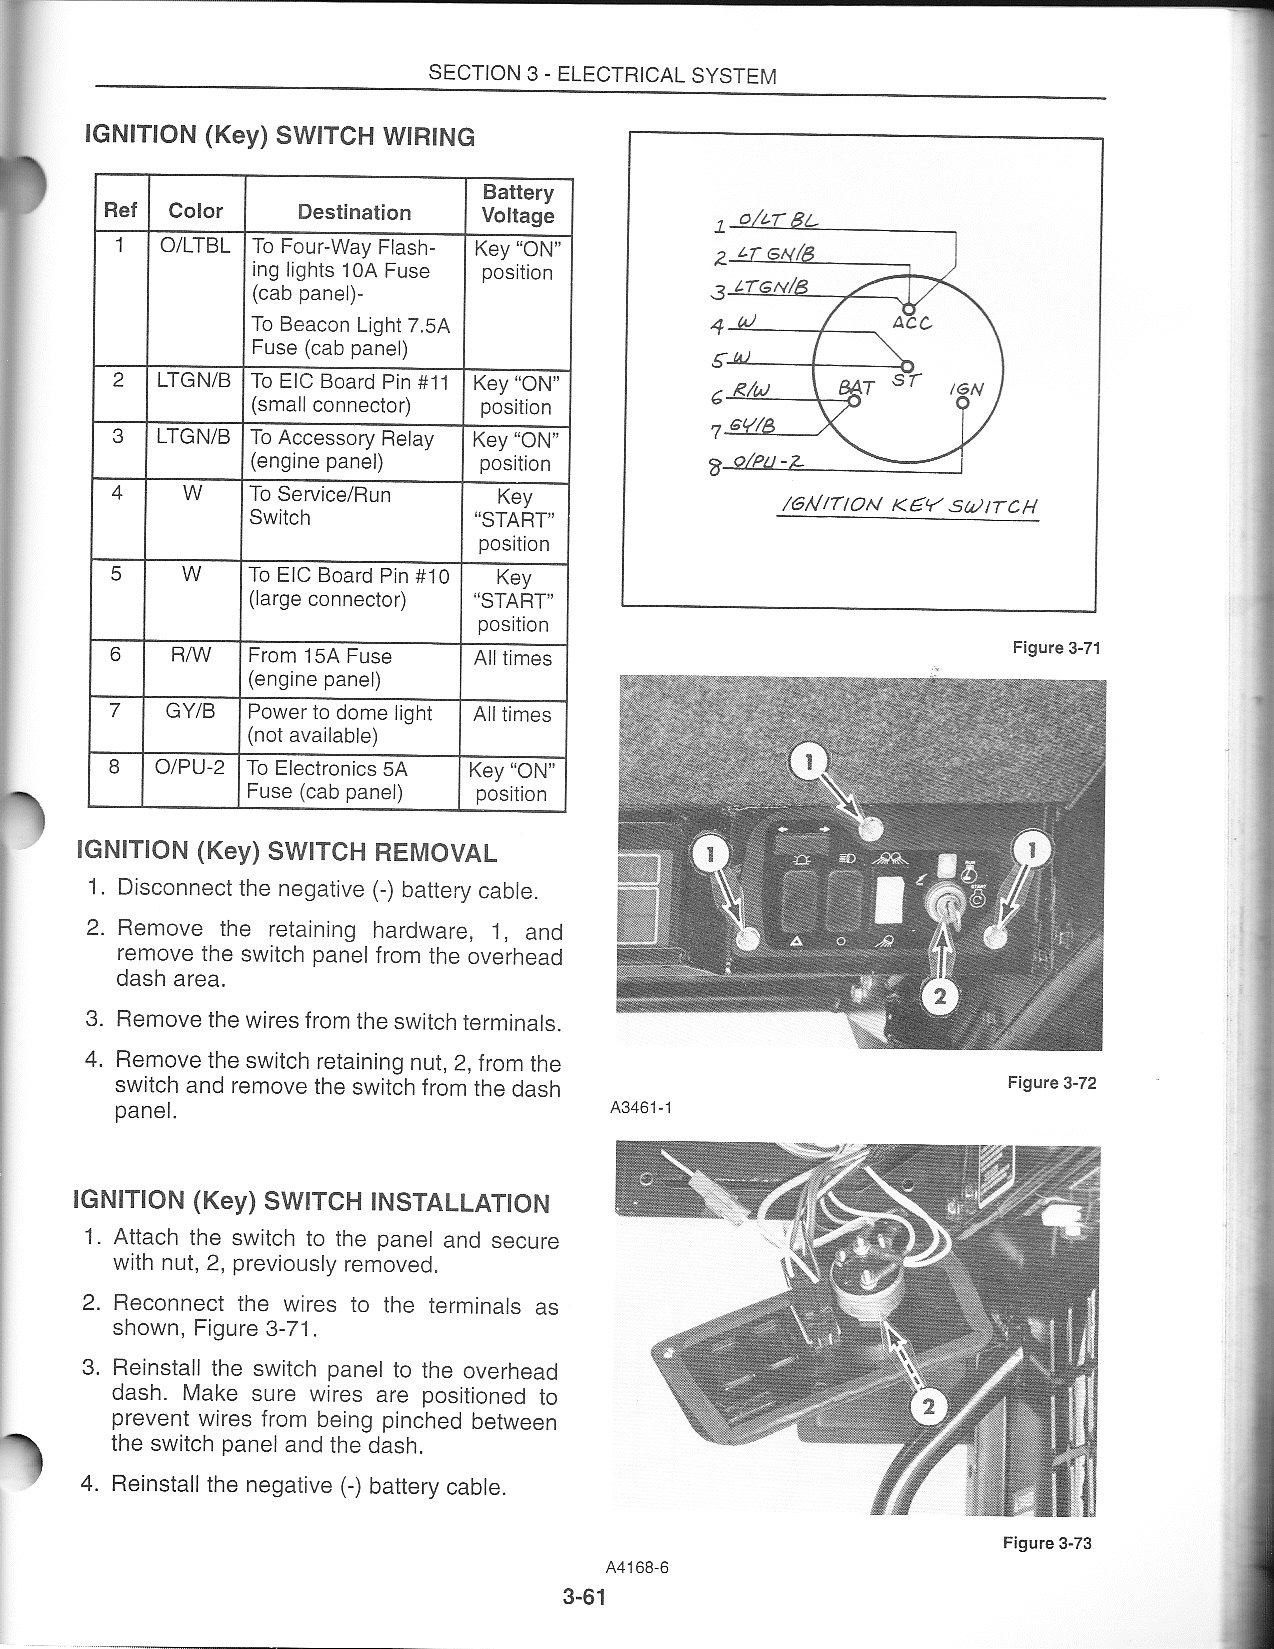 I Have A Lx885 Skid Steer It Started Blowing 30 Amp Fuse On The Box Bat Ideas Here Is Info An Offer Only Know Of Two Panels In Engine Compartment If This Isnt Helpful Then Please Advise So Can Opt Out